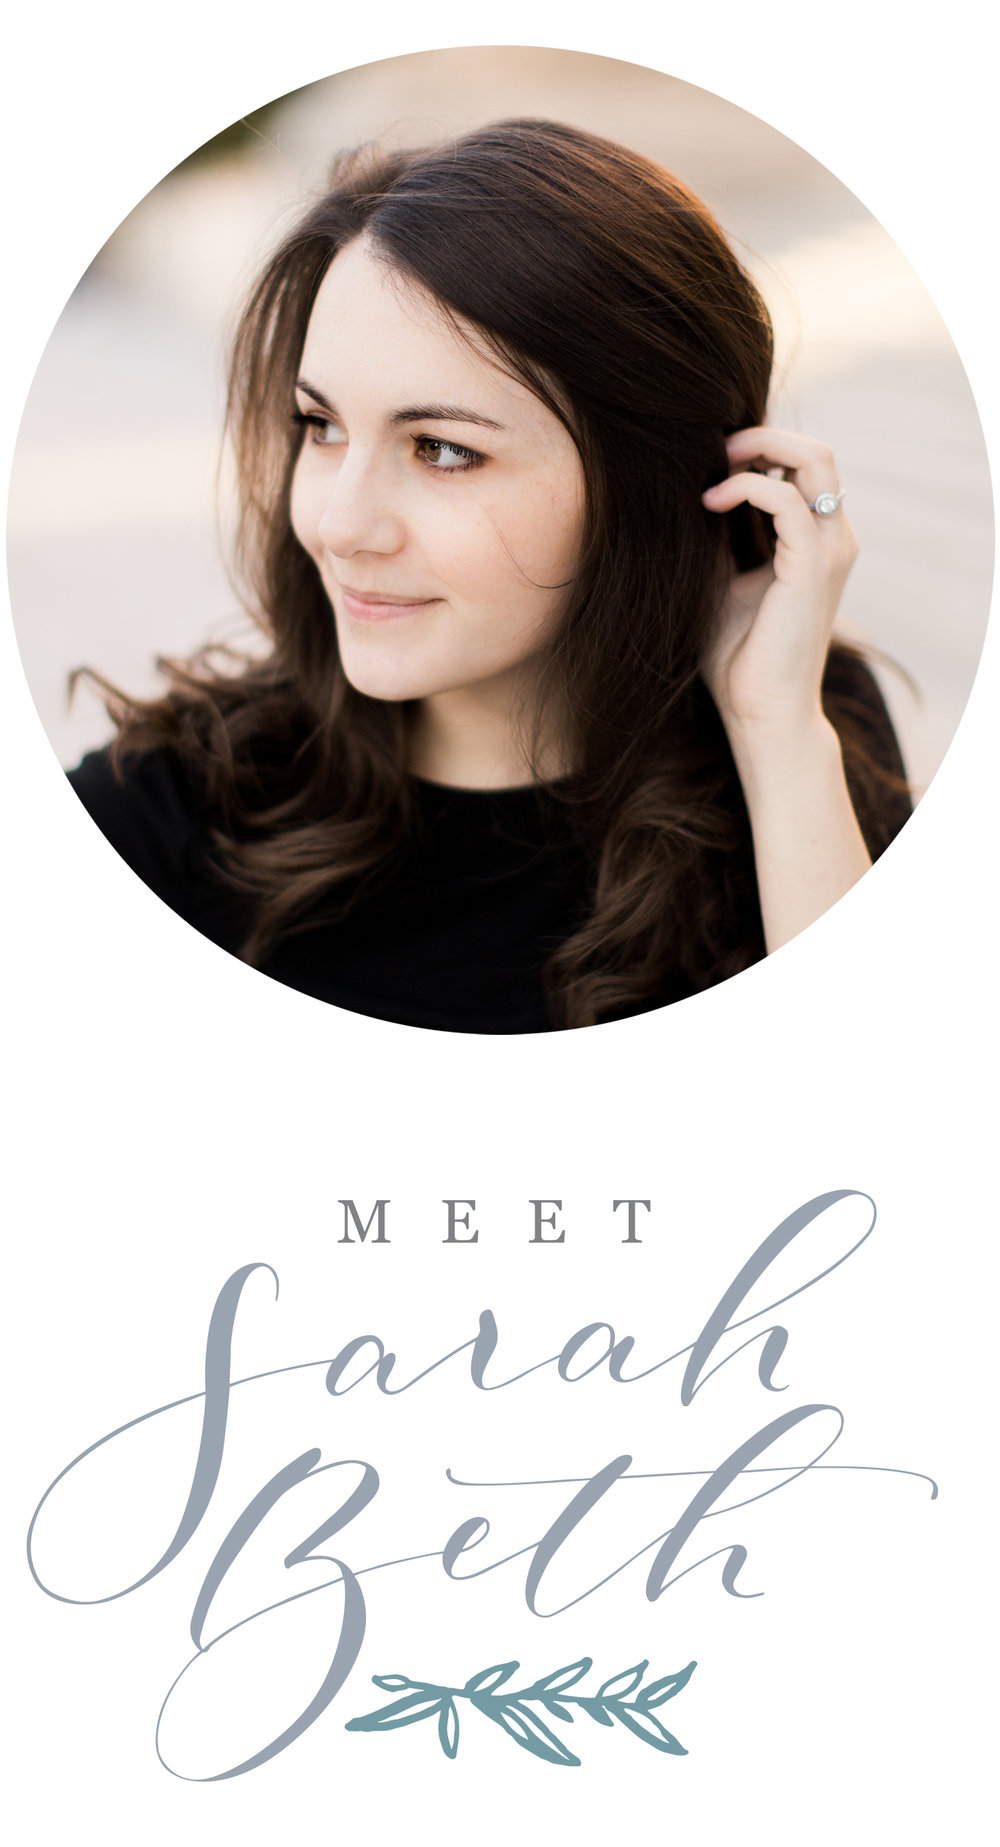 MeetSarahBeth.jpg